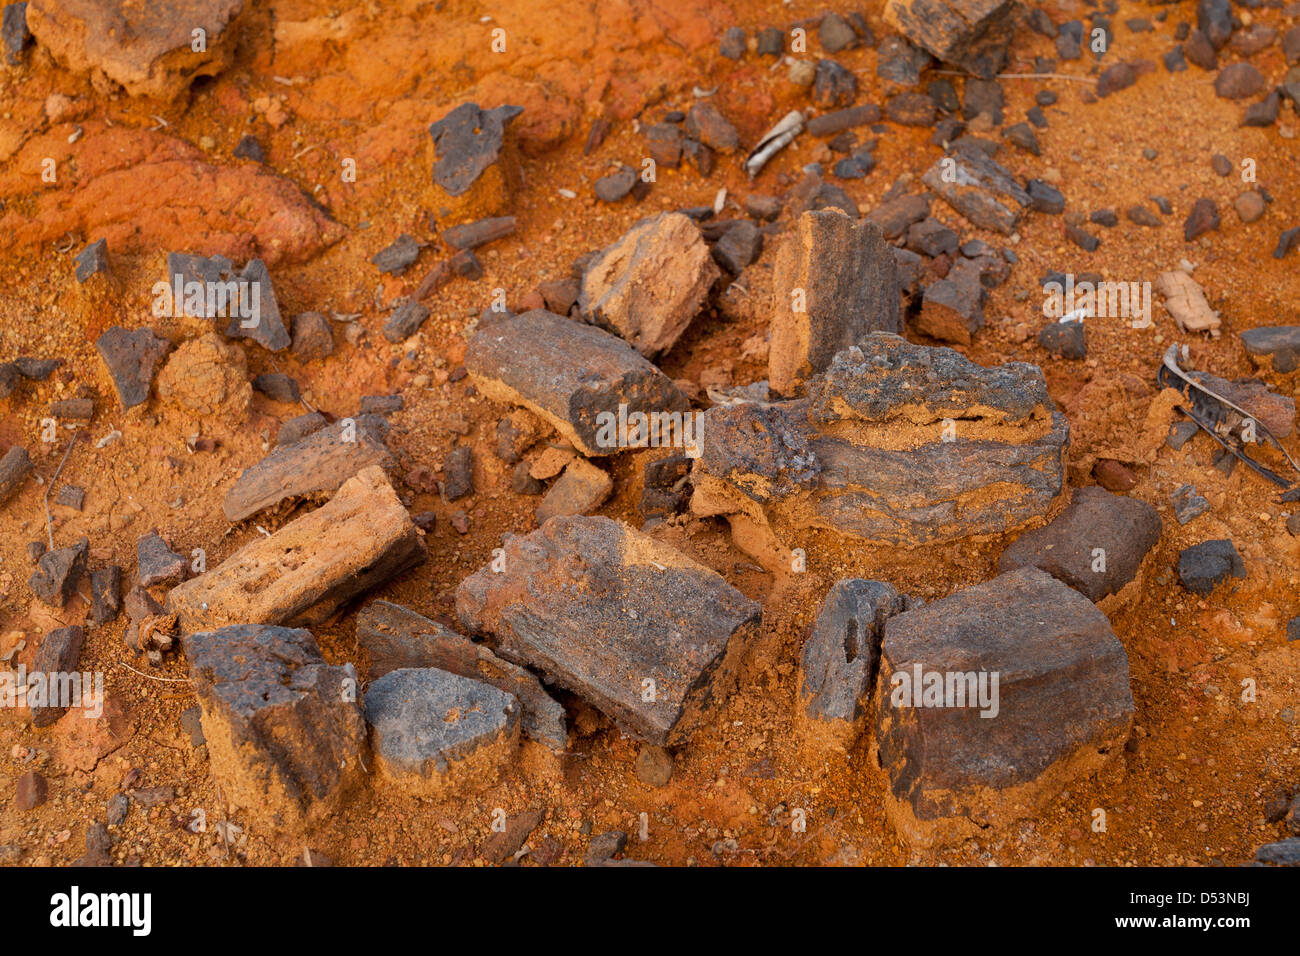 Coal from ancient settlements in Sarigua national park (desert), Herrera province, Republic of Panama. - Stock Image